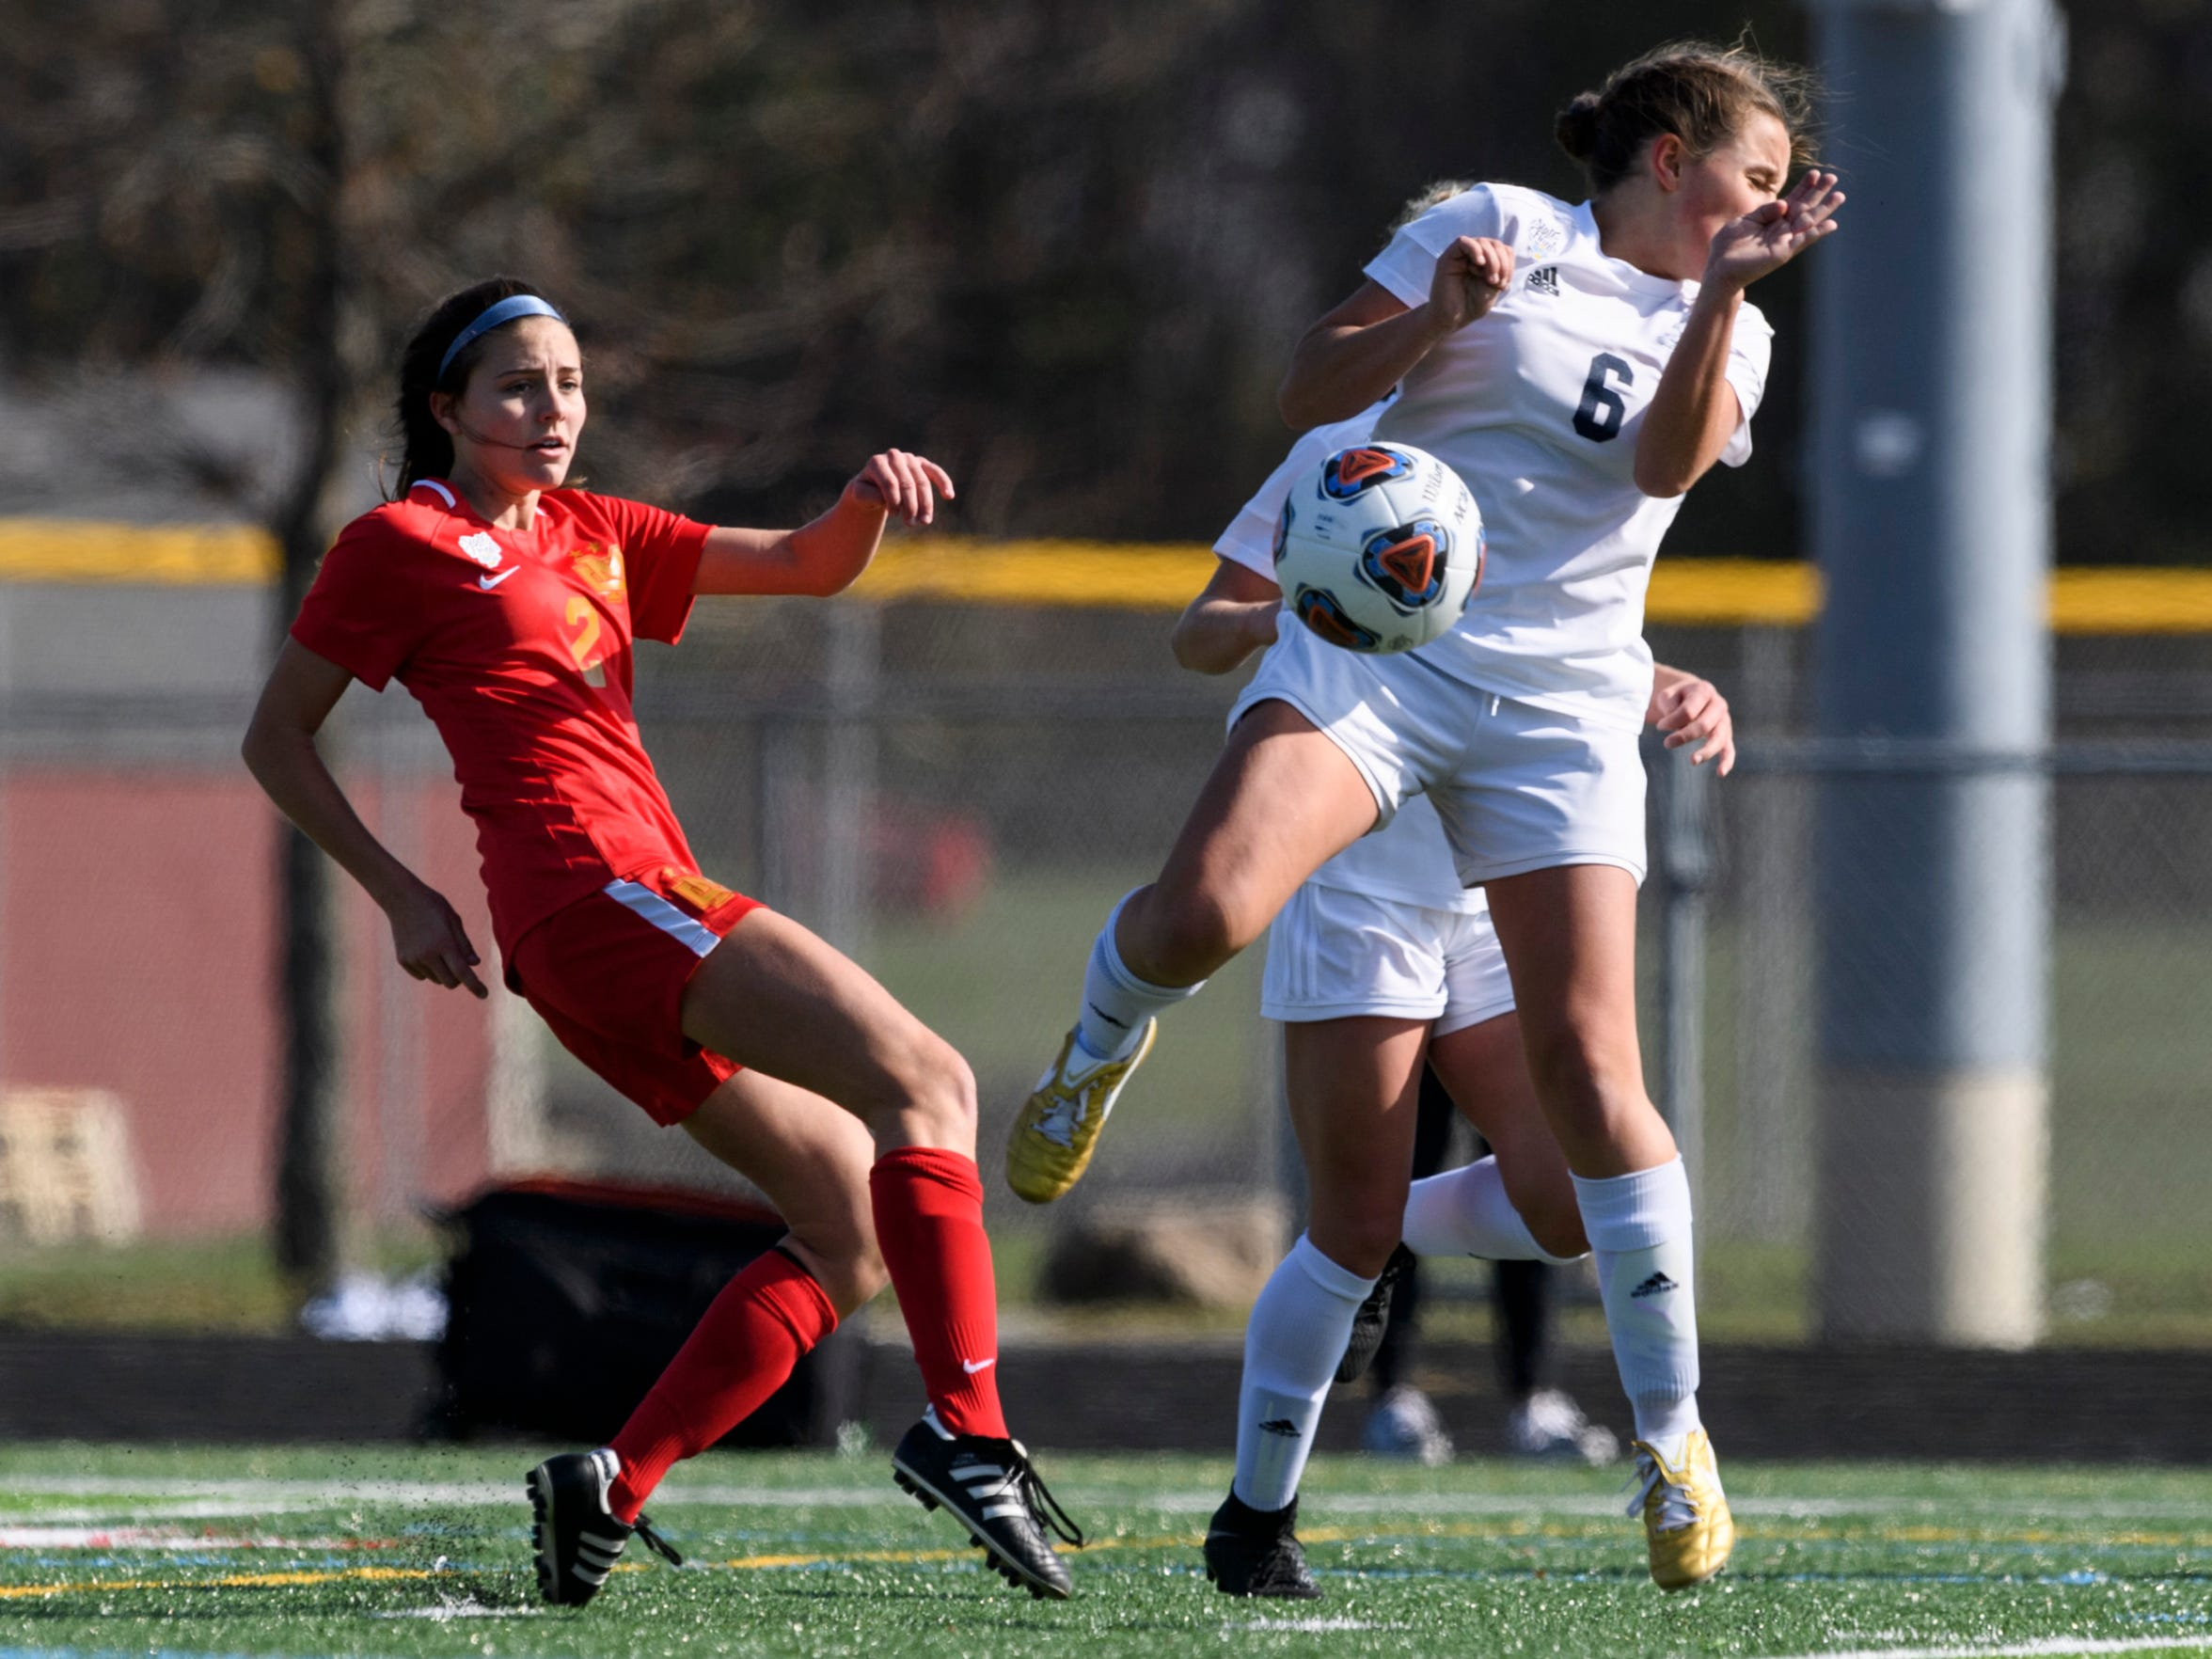 Mater Dei's Este Bonnell (2) kicks the ball around Fort Wayne Bishop Dwenger's Karley O'Leary (6) during the IHSAA Class 2A girls state soccer championship at Fishers High School in Fishers, Ind., Saturday, Nov. 2, 2019. The Wildcats defeated the Saints, 2-0, to win their third consecutive championship title after moving up to 2A this year.